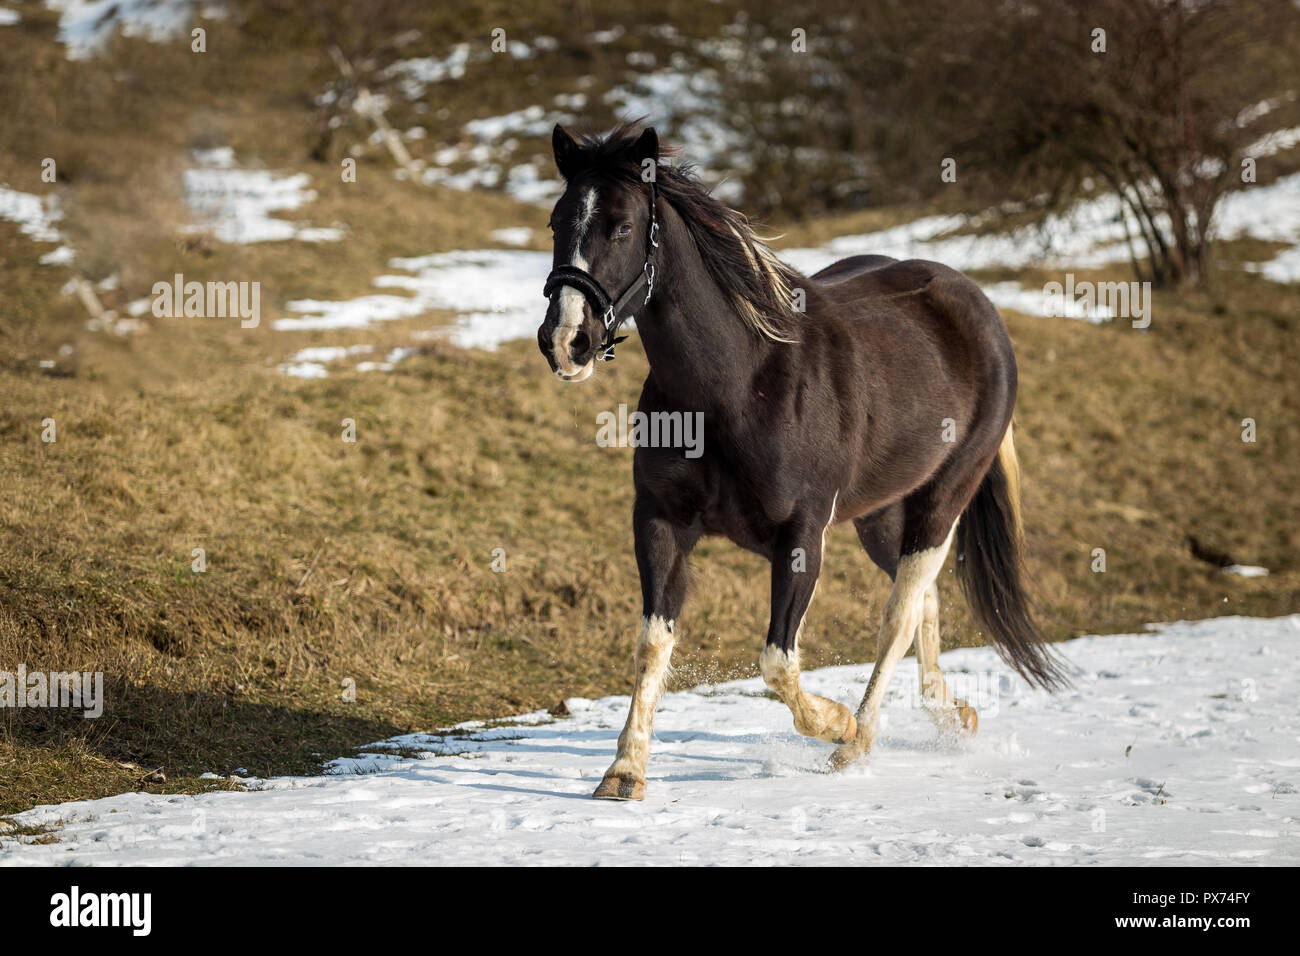 Black And White Horse Running In The Snow Stock Photo Alamy